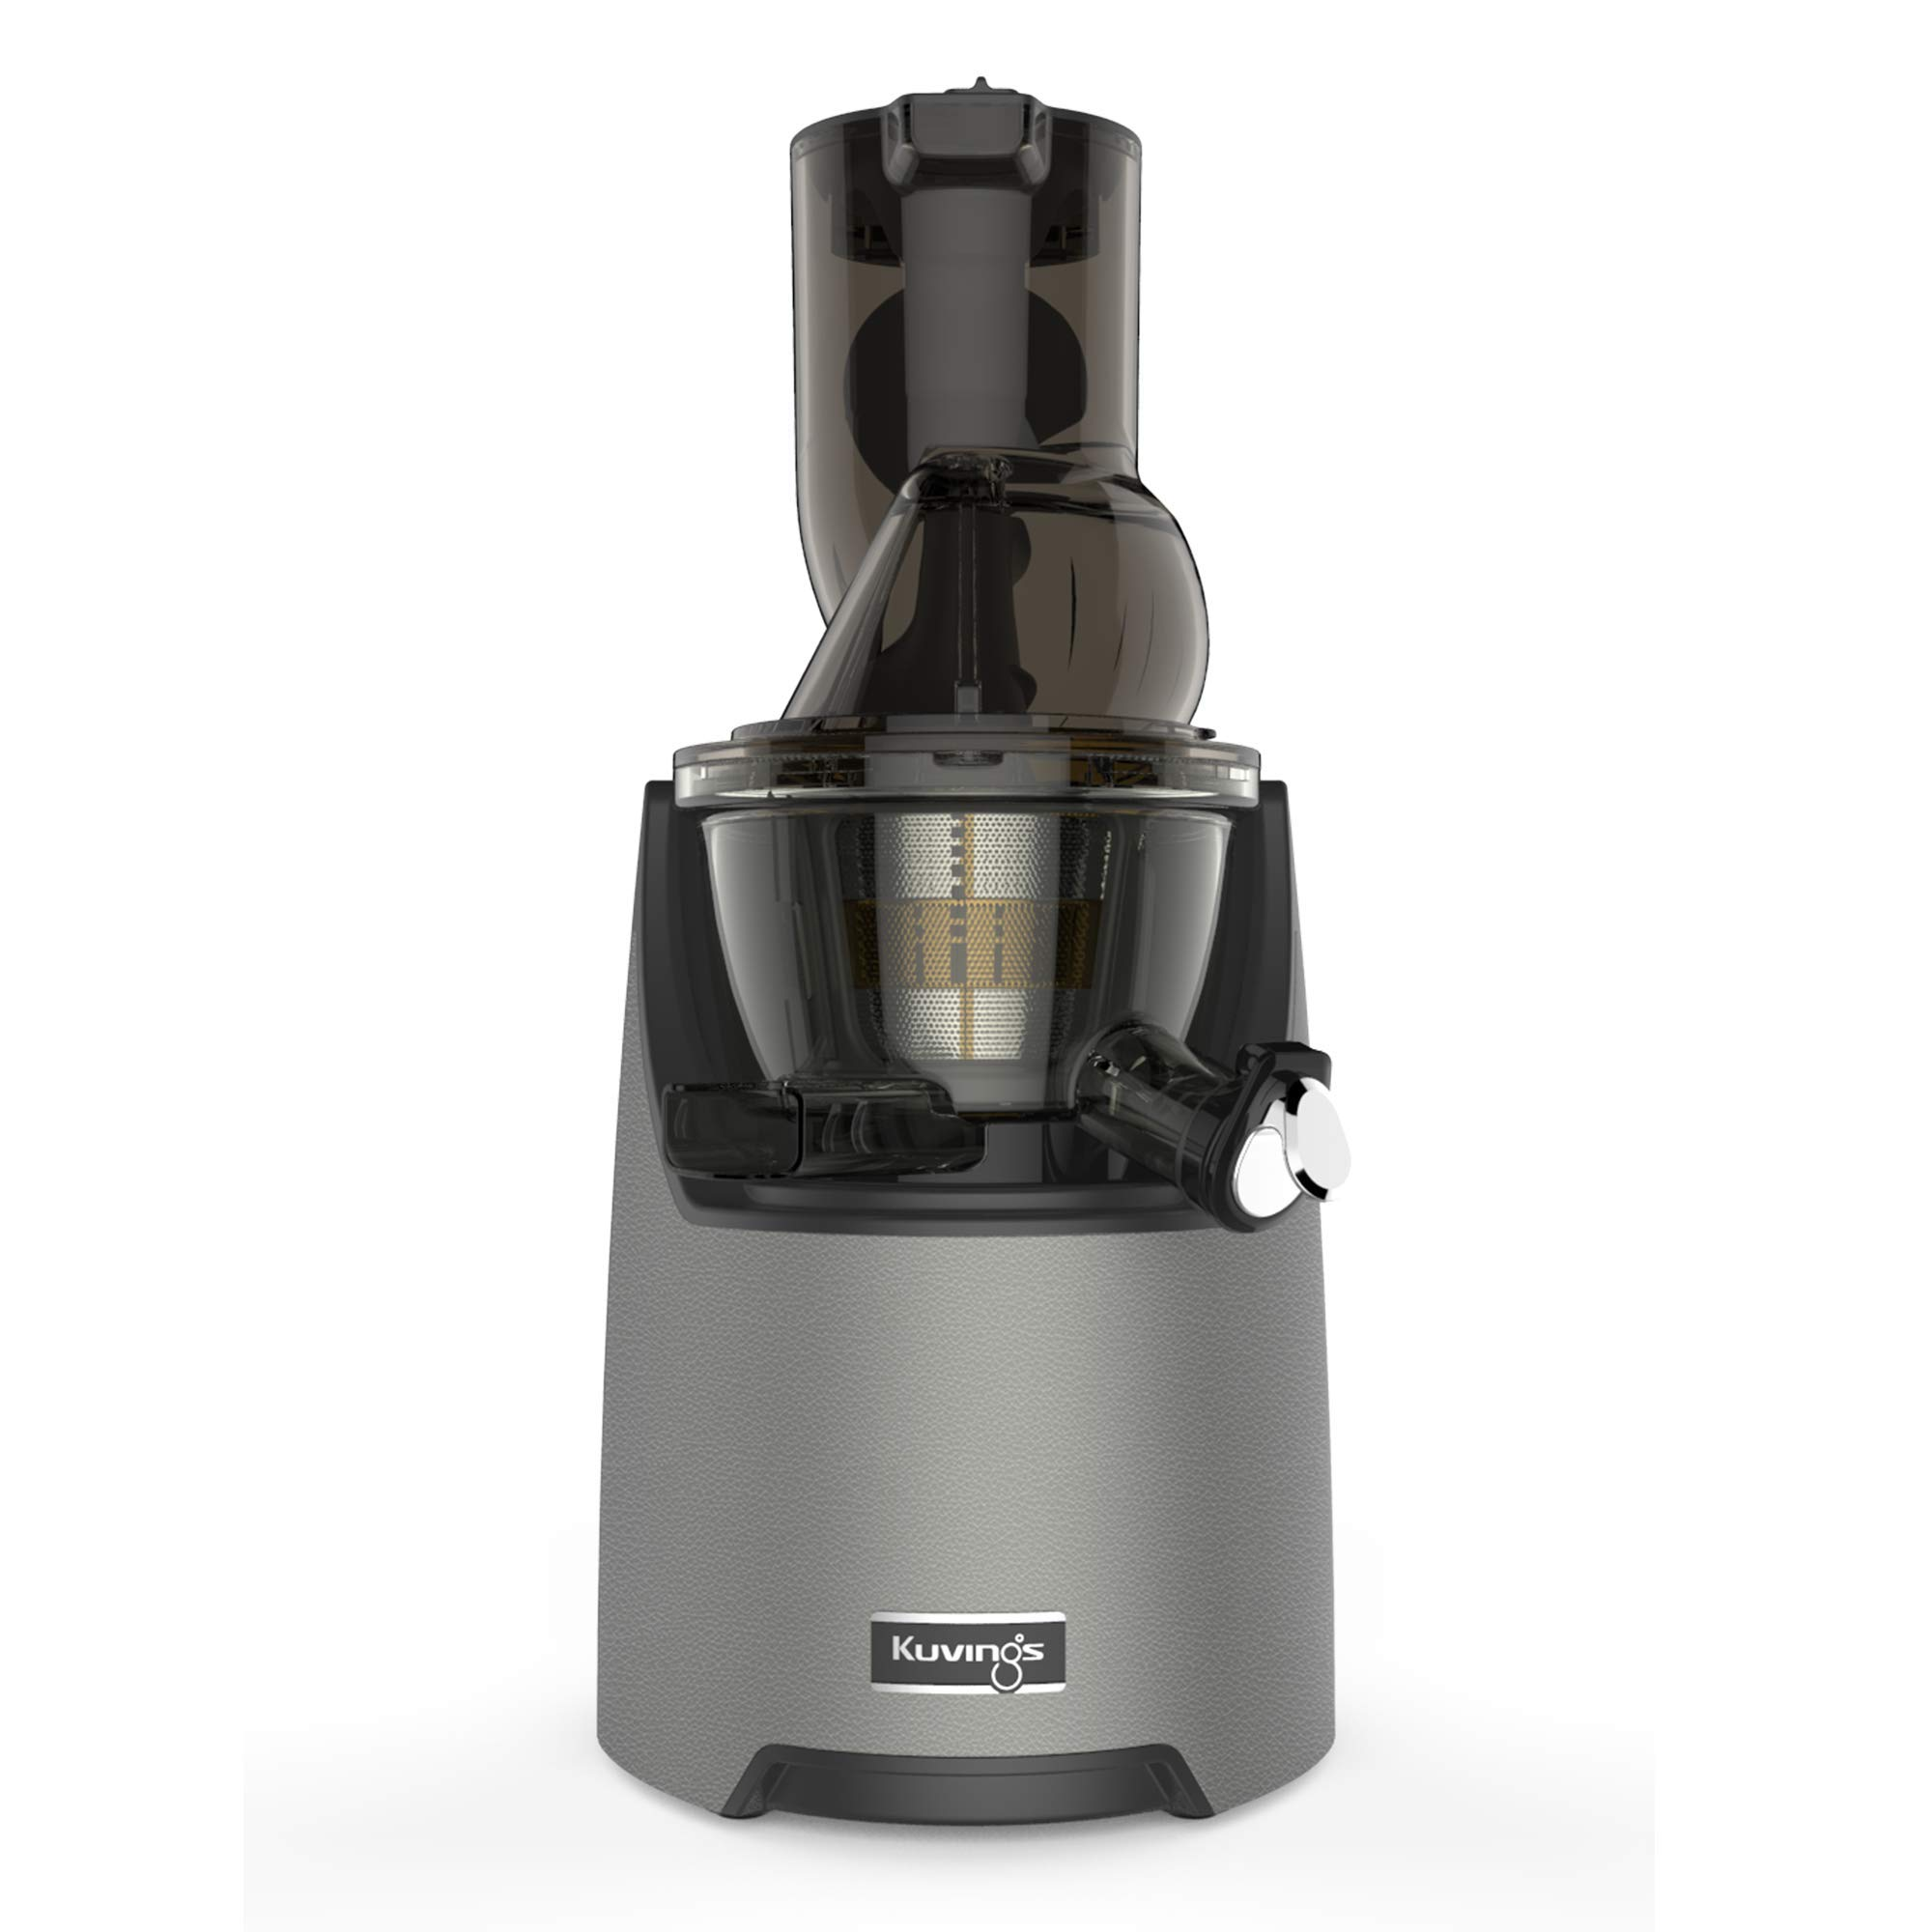 Kuvings Whole Slow Juicer EVO820GM - Higher Nutrients and Vitamins, BPA-Free Components, Easy to Clean, Ultra Efficient 240W, 50RPMs, Includes Smoothie and Blank Strainer-Gun Metal by Kuvings